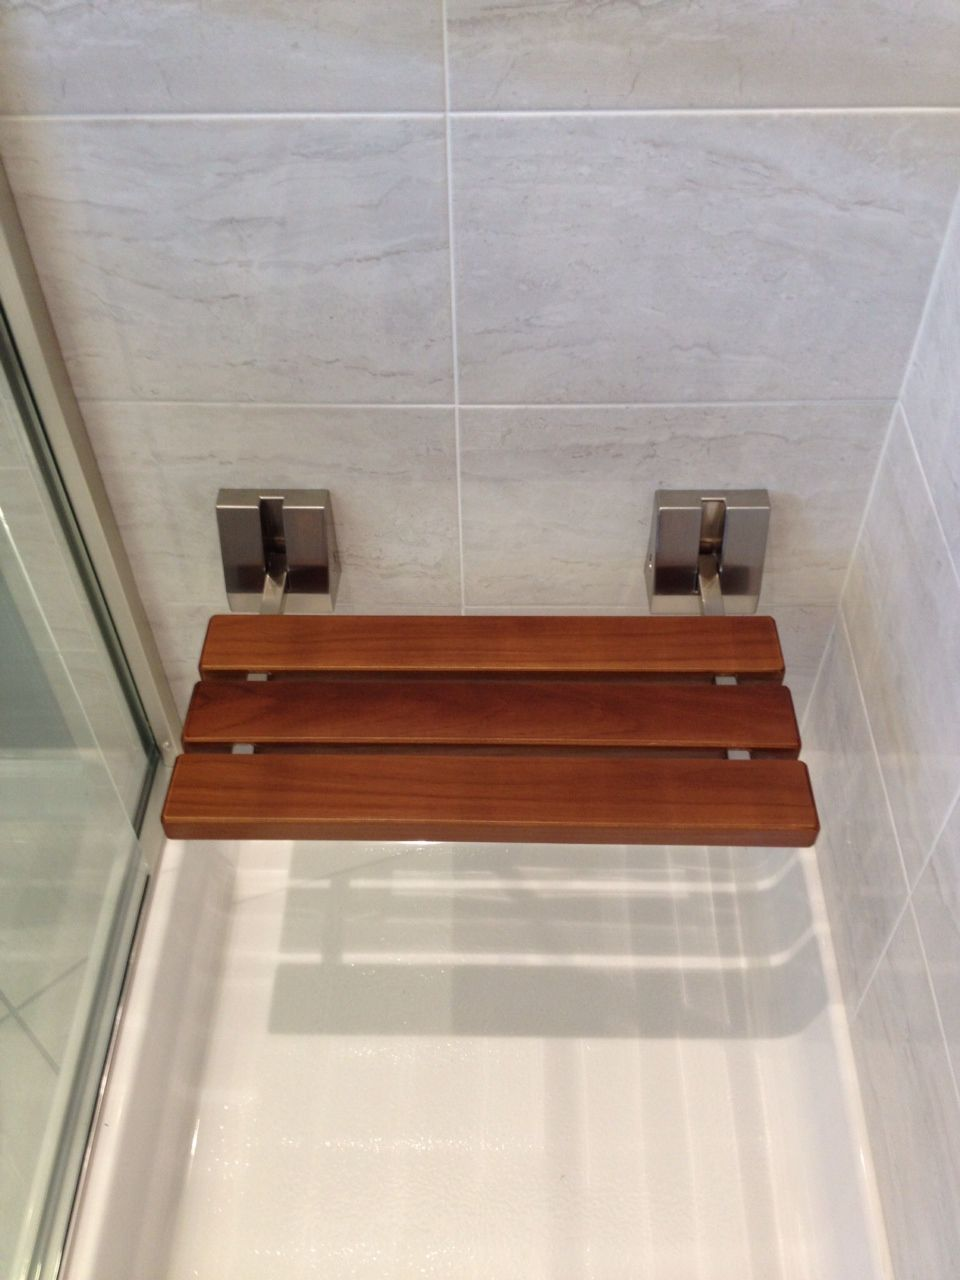 Fold down shower seat. Want this!! But, want mounted higher with eye ...